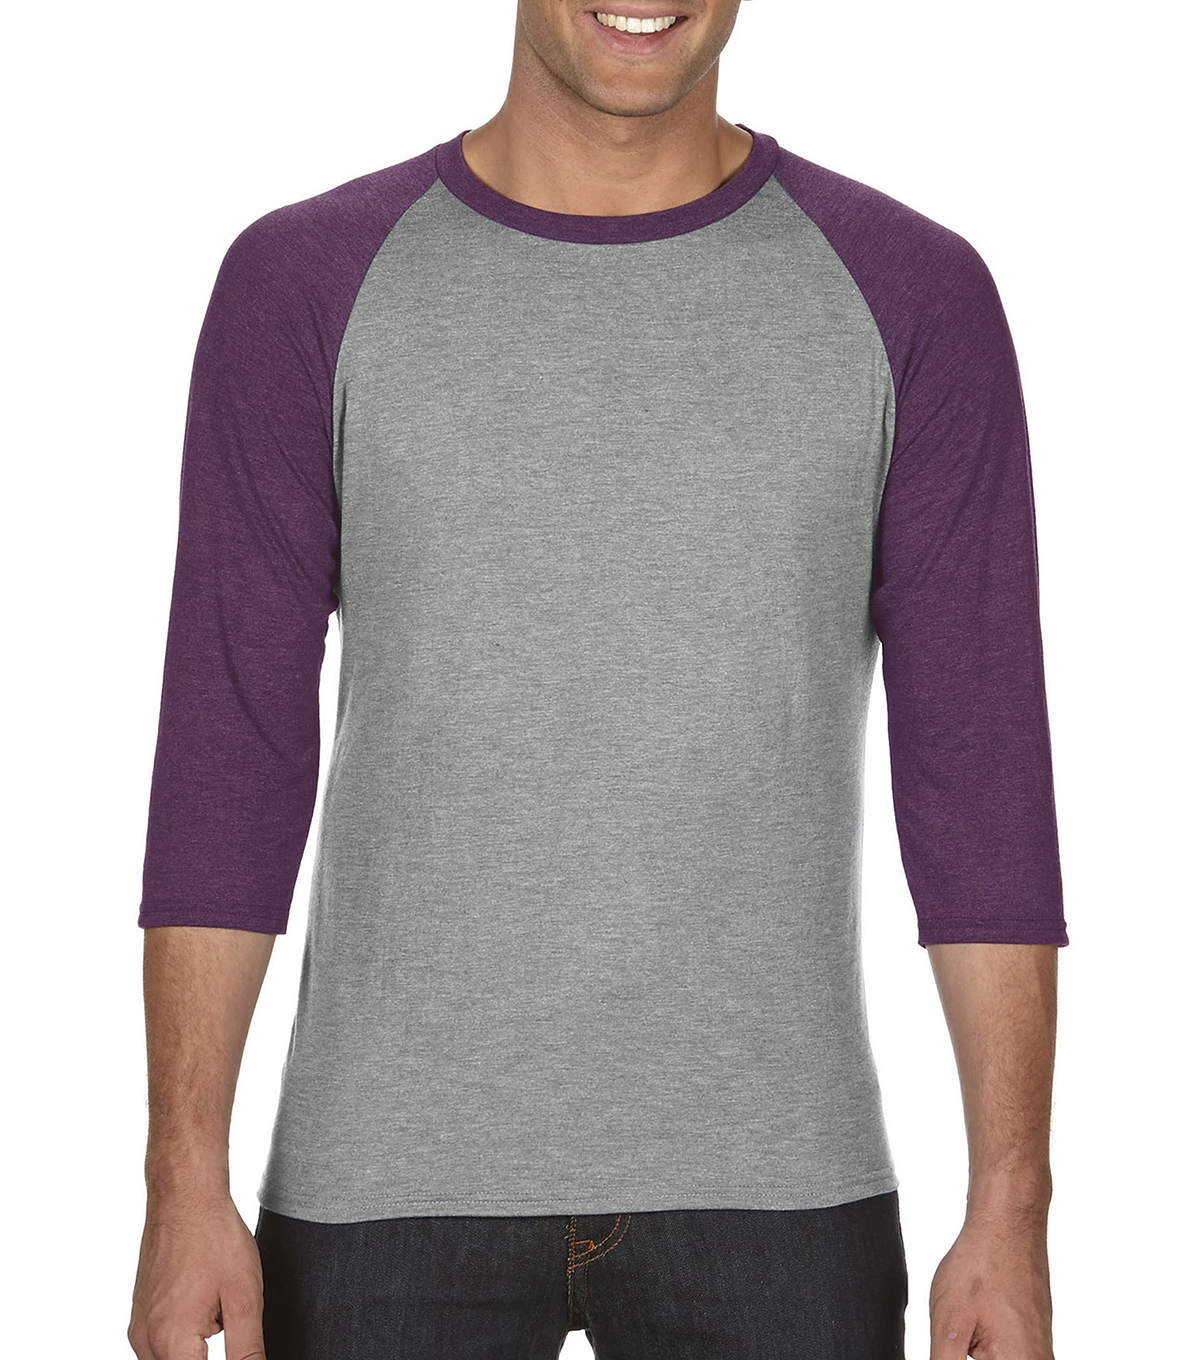 Anvil Extra Large Adult Raglan Shirt, Grey/aubergine